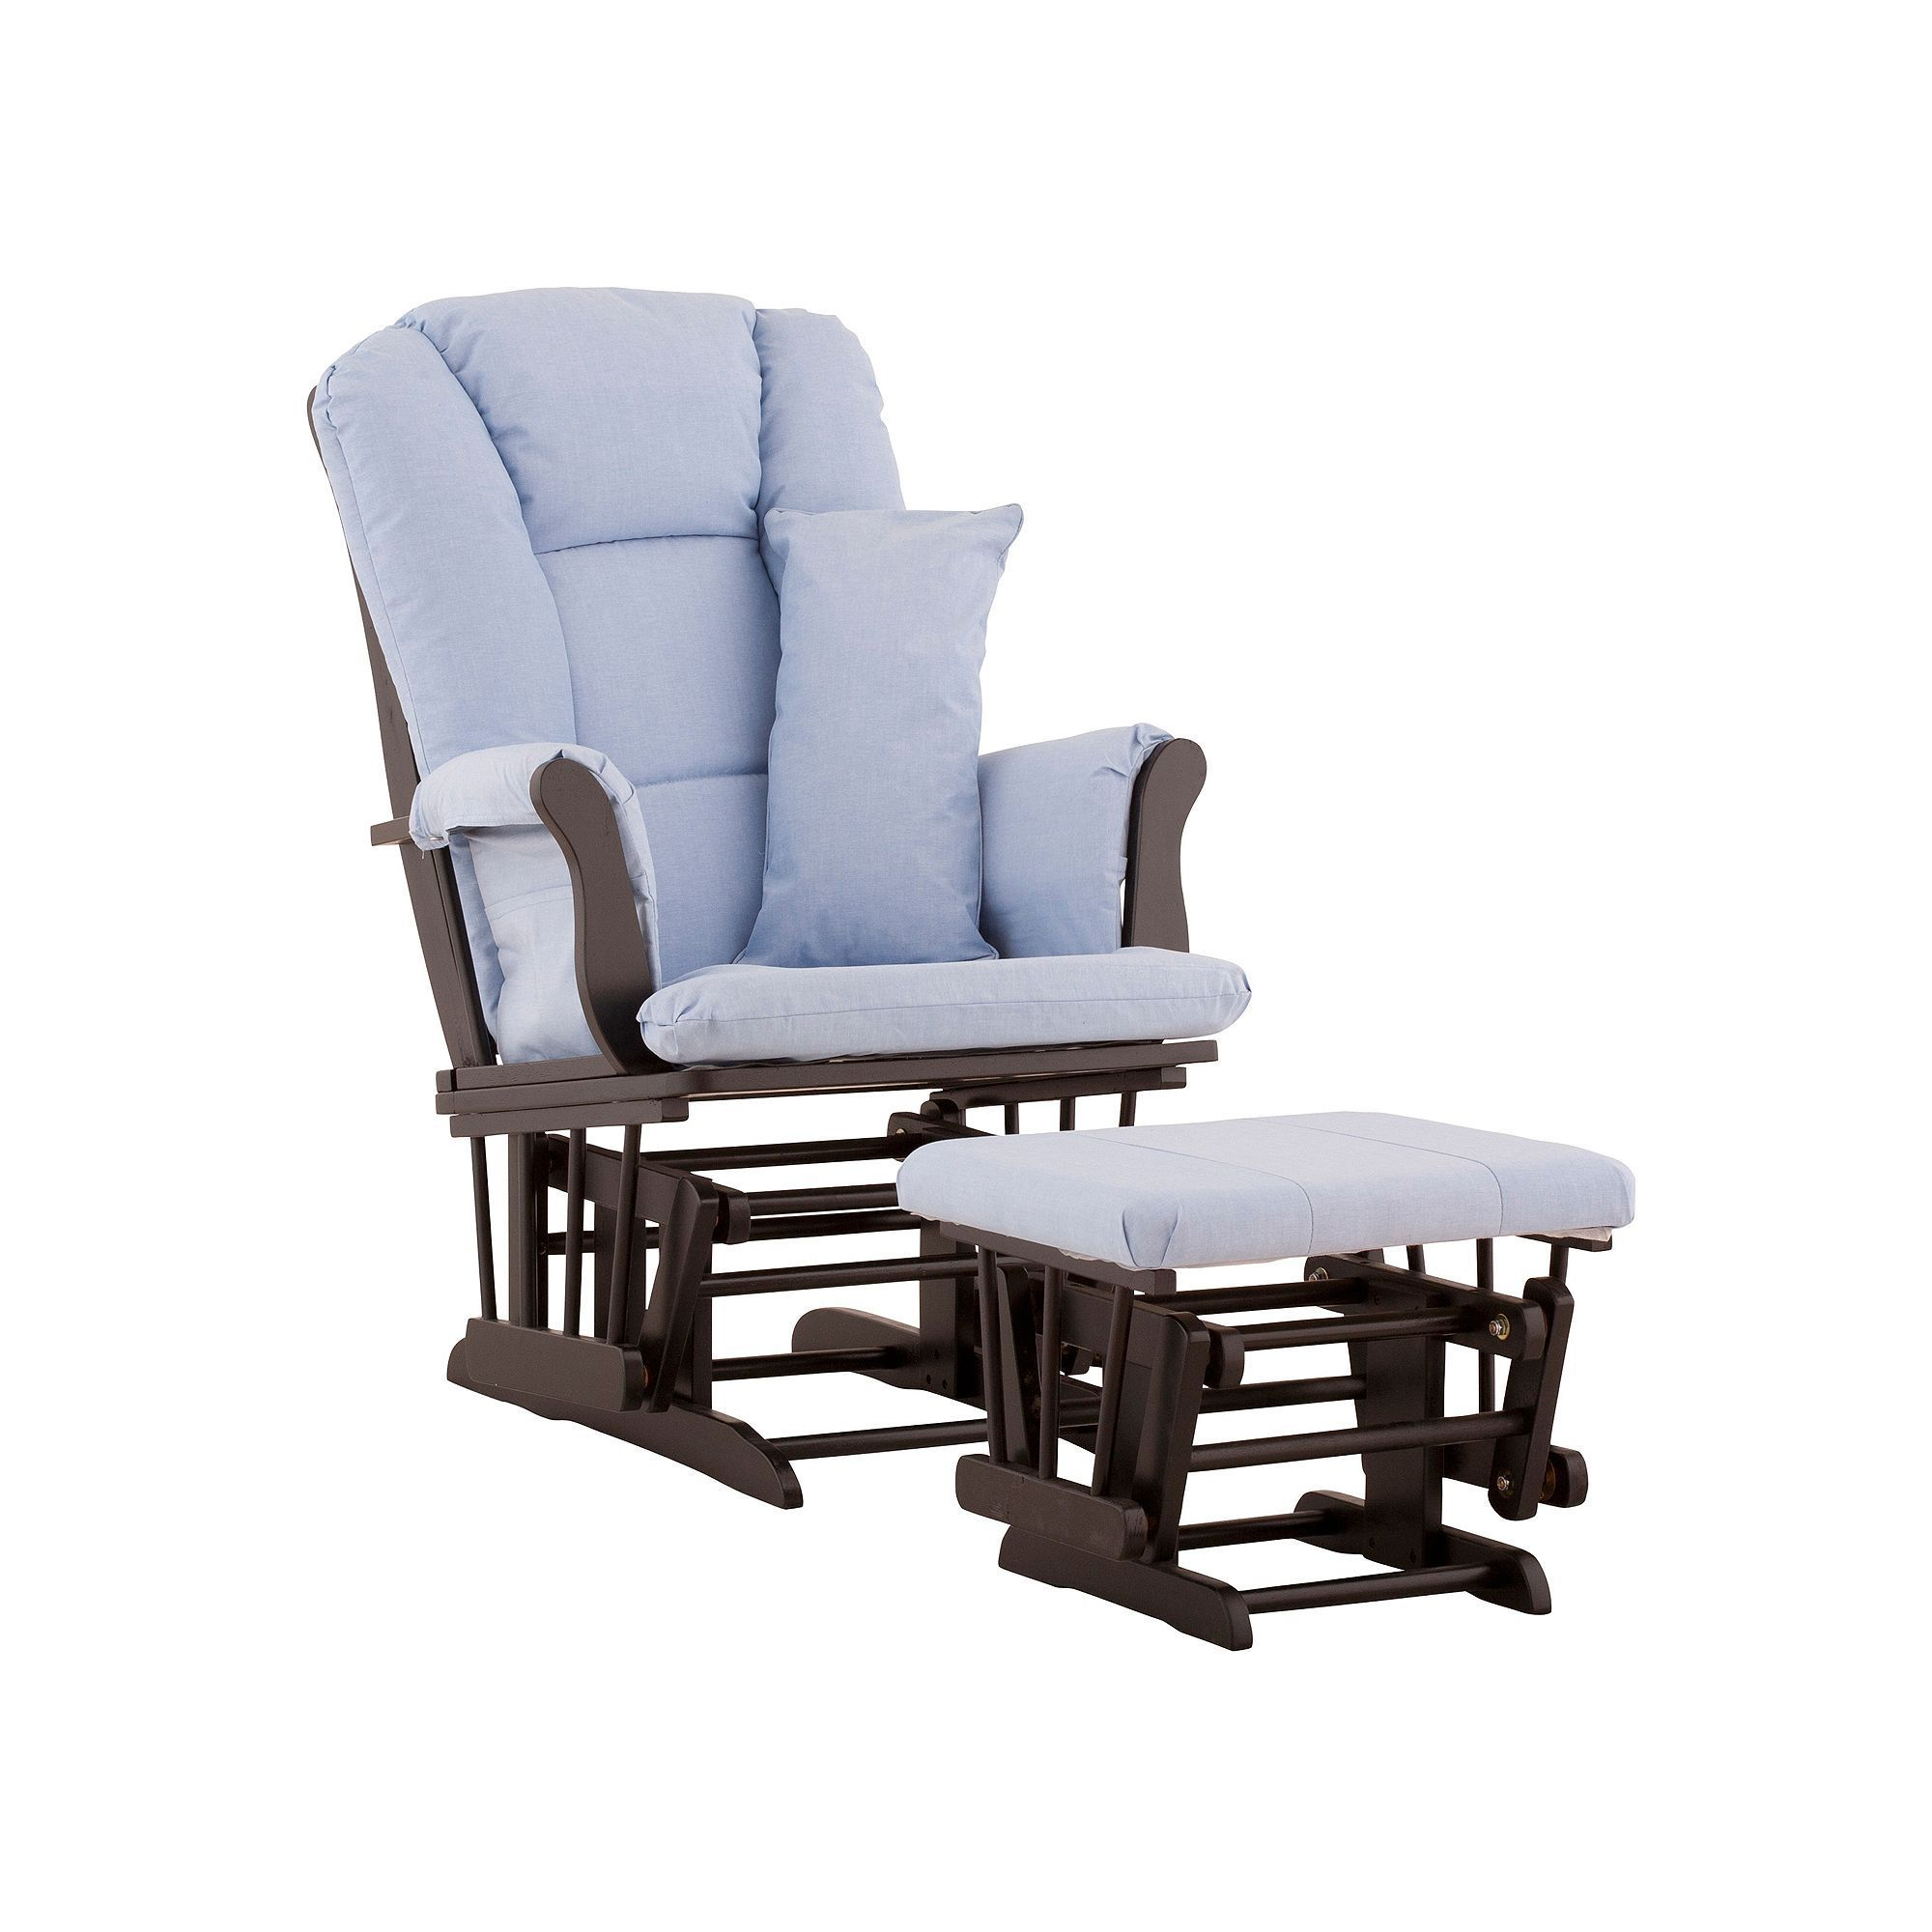 Stork Craft Tuscany Custom Glider Chair And Ottoman Set Blue Durable